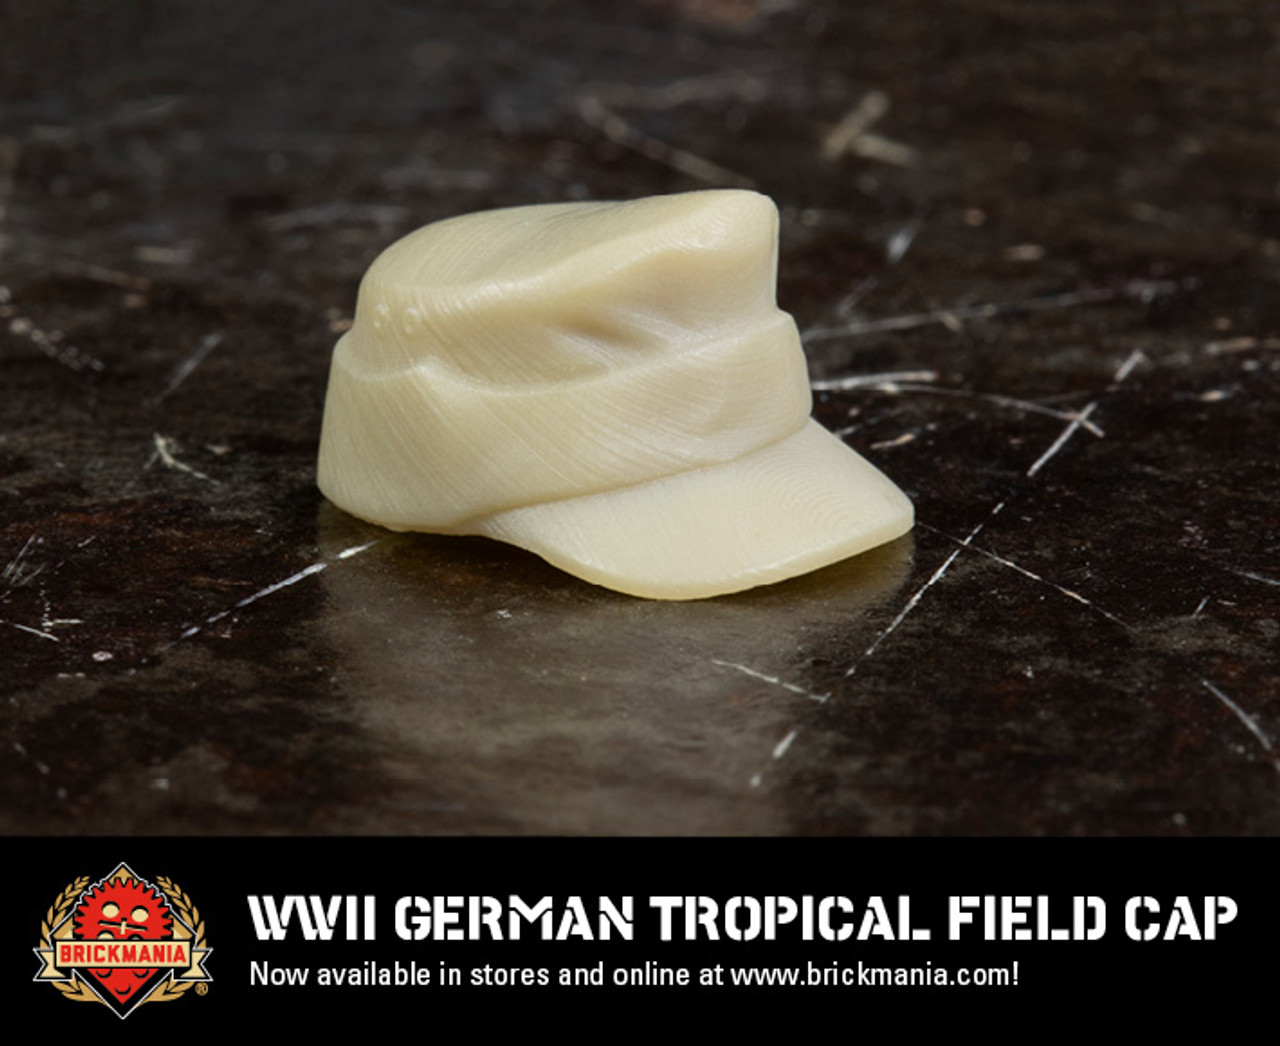 WWII German Tropical Field Cap